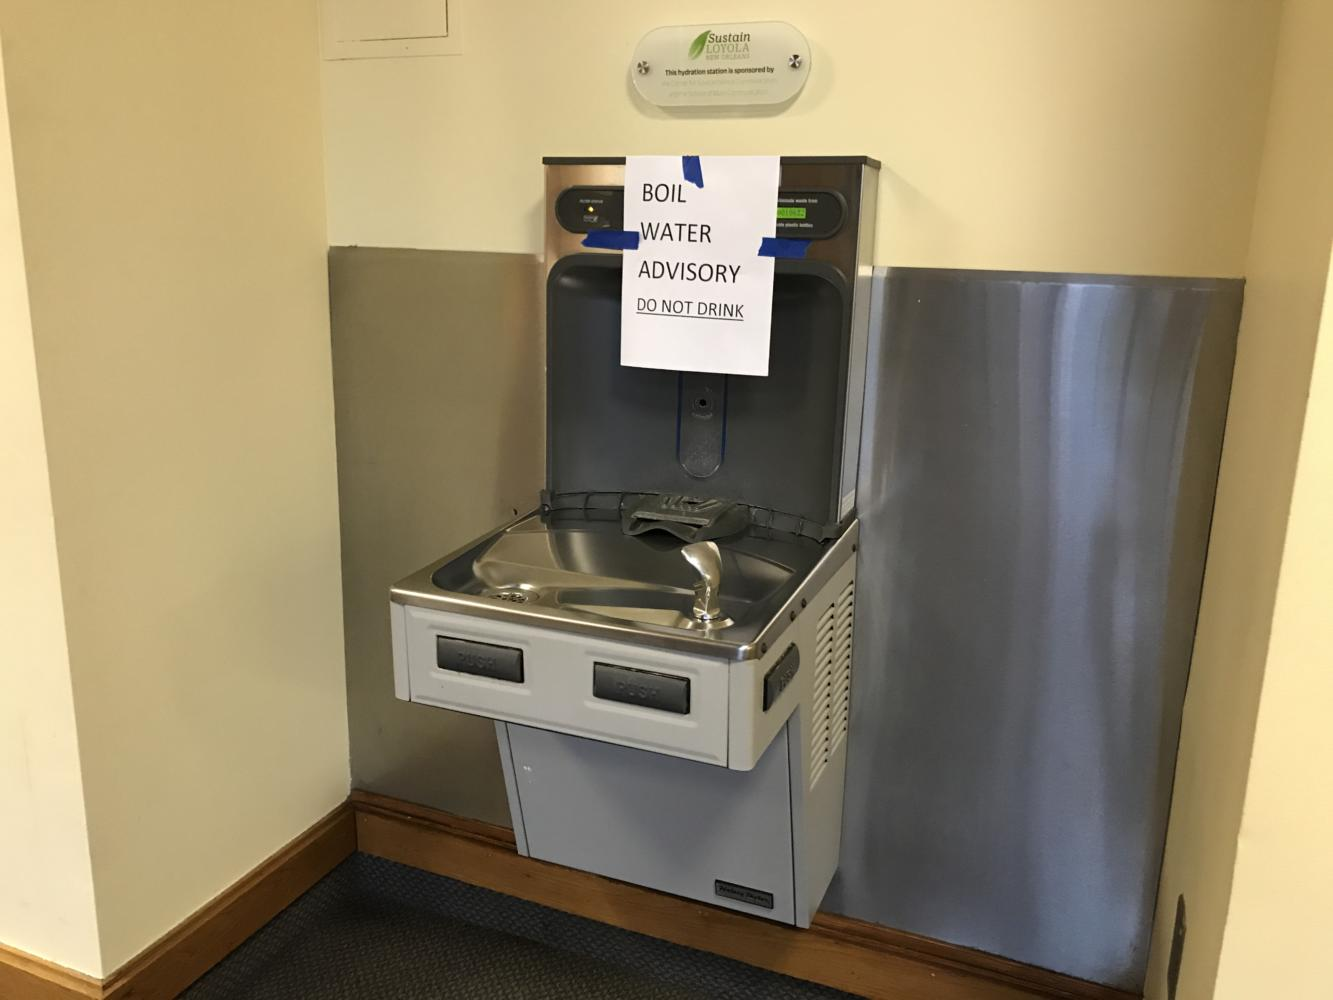 A sign warns not to drink from the water fountains in the Communications and Music Complex on Sept. 20, 2017. Photo credit: Nick Reimann